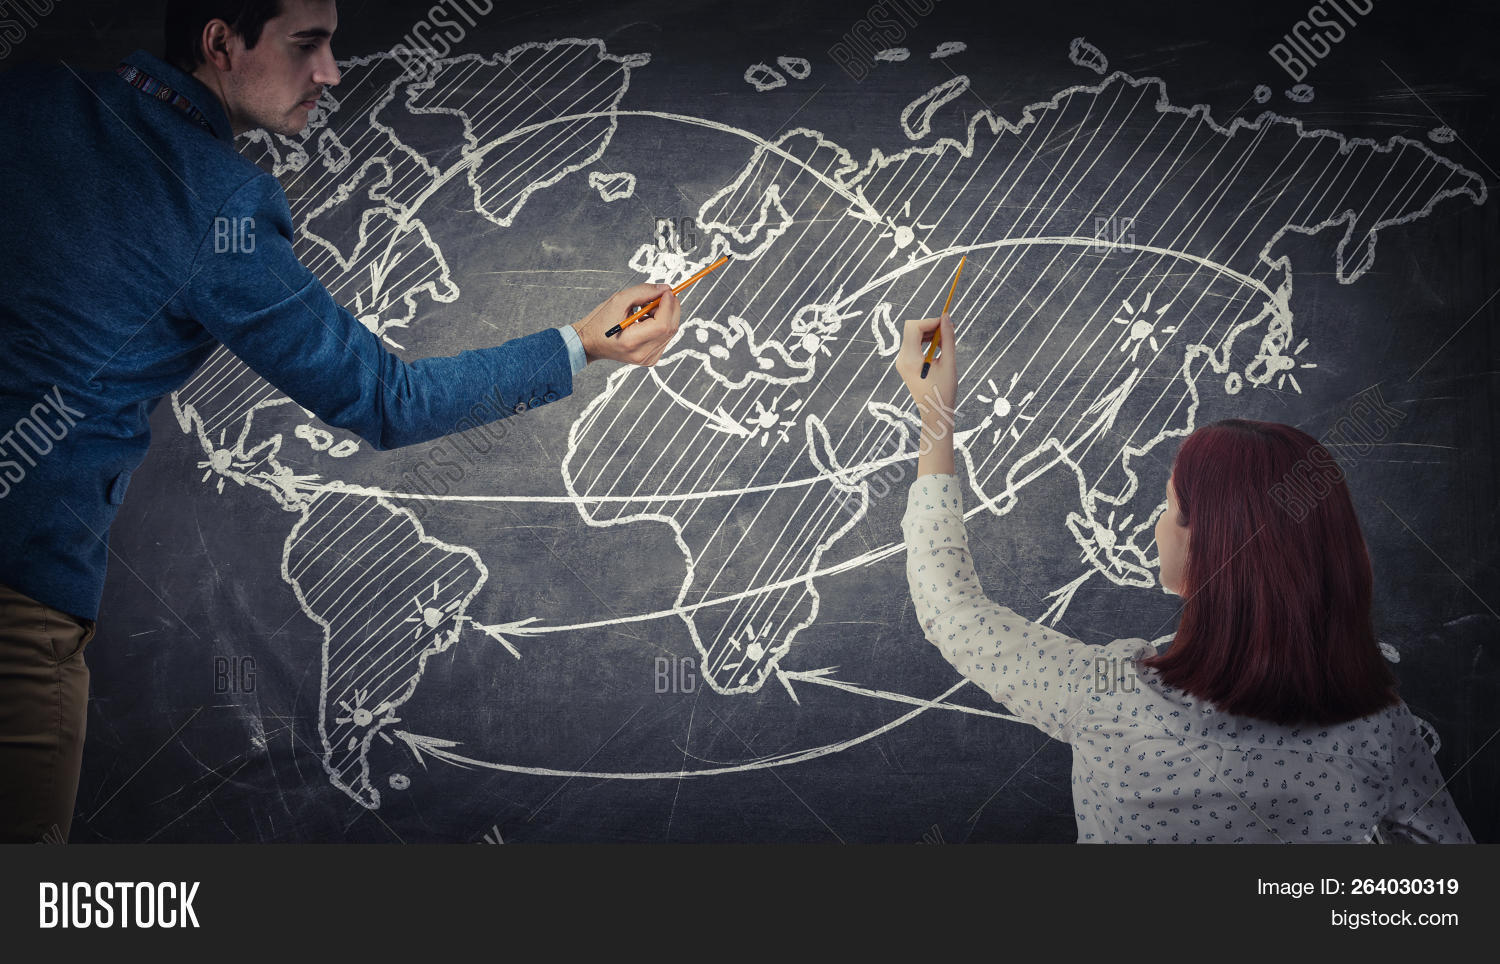 Man And Woman Sharing Thoughts Together Drawing A World Map On A Blackboard. Future Journey Planning